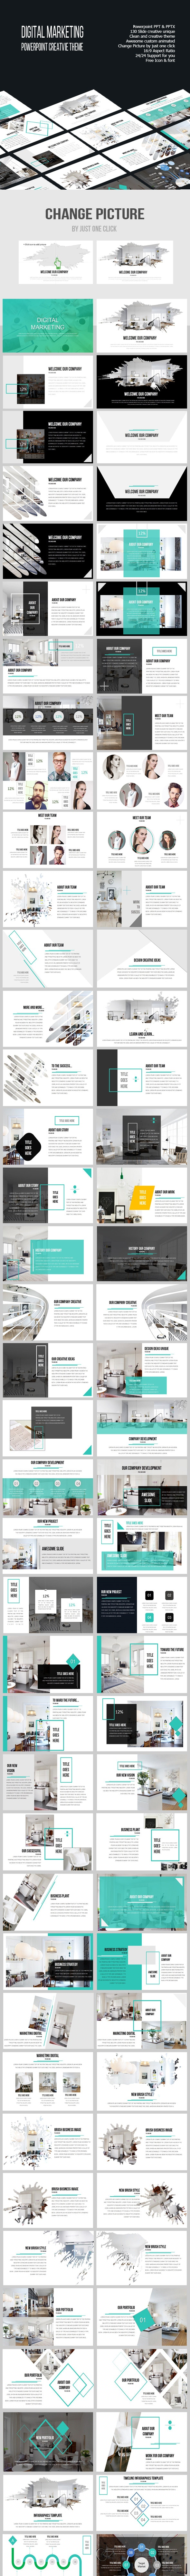 Digital Marketing Powerpoint Creative Template - Business PowerPoint Templates